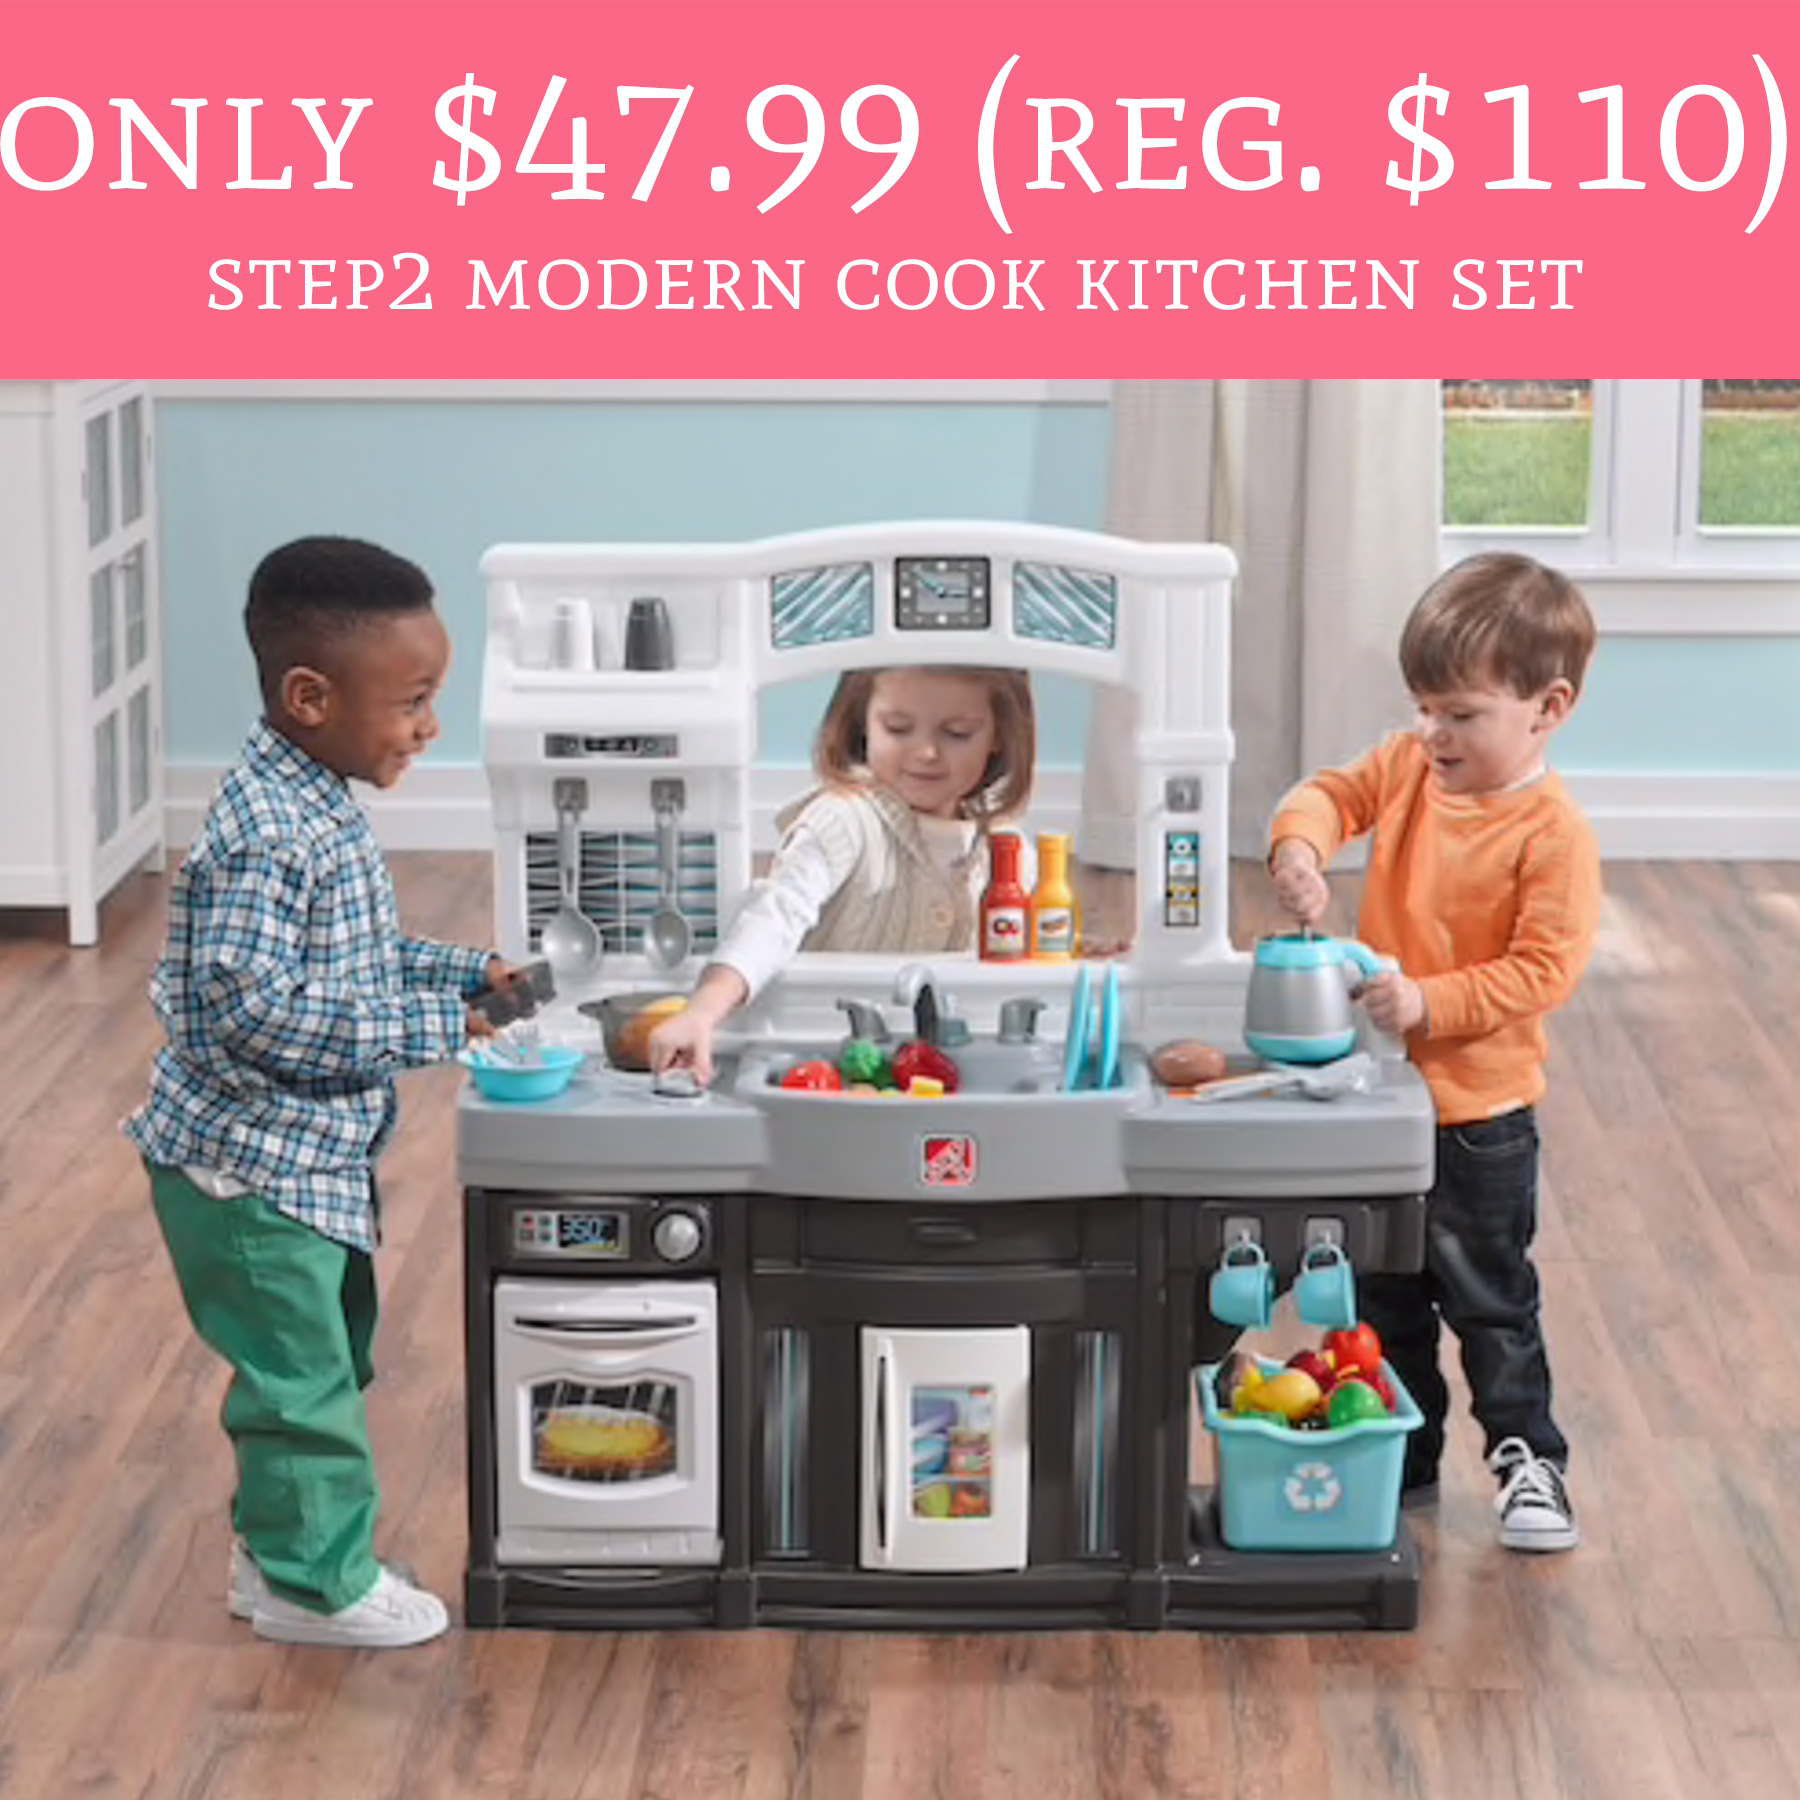 Step Modern Cook Kitchen Set